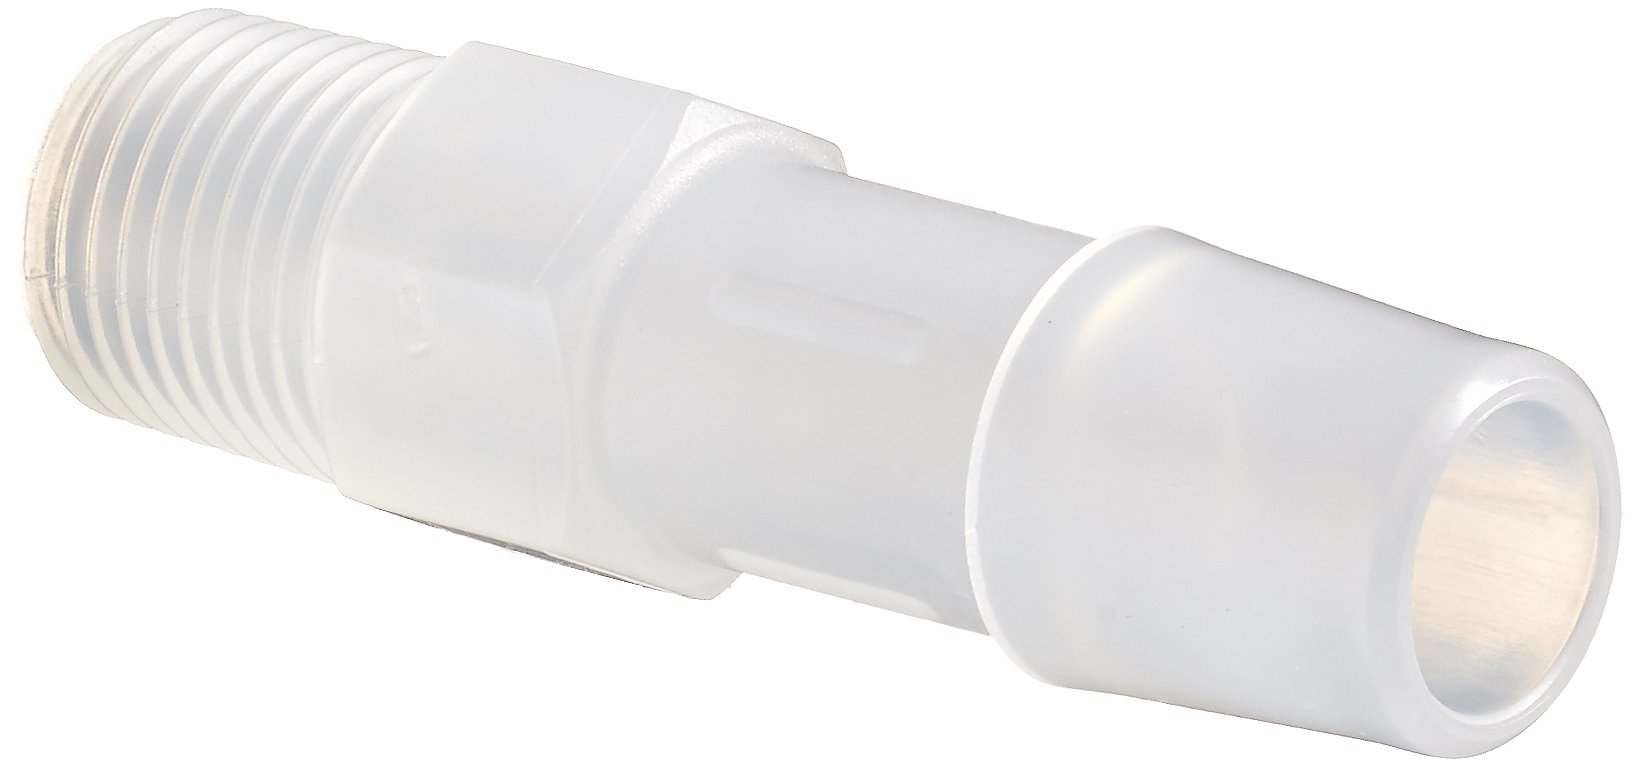 Eldon James A2-6PP Non-Animal Derived Polypropylene Adapter Fitting, 1/8-27 NPT to 3/8'' Hose Barb (Pack of 10) by Eldon James